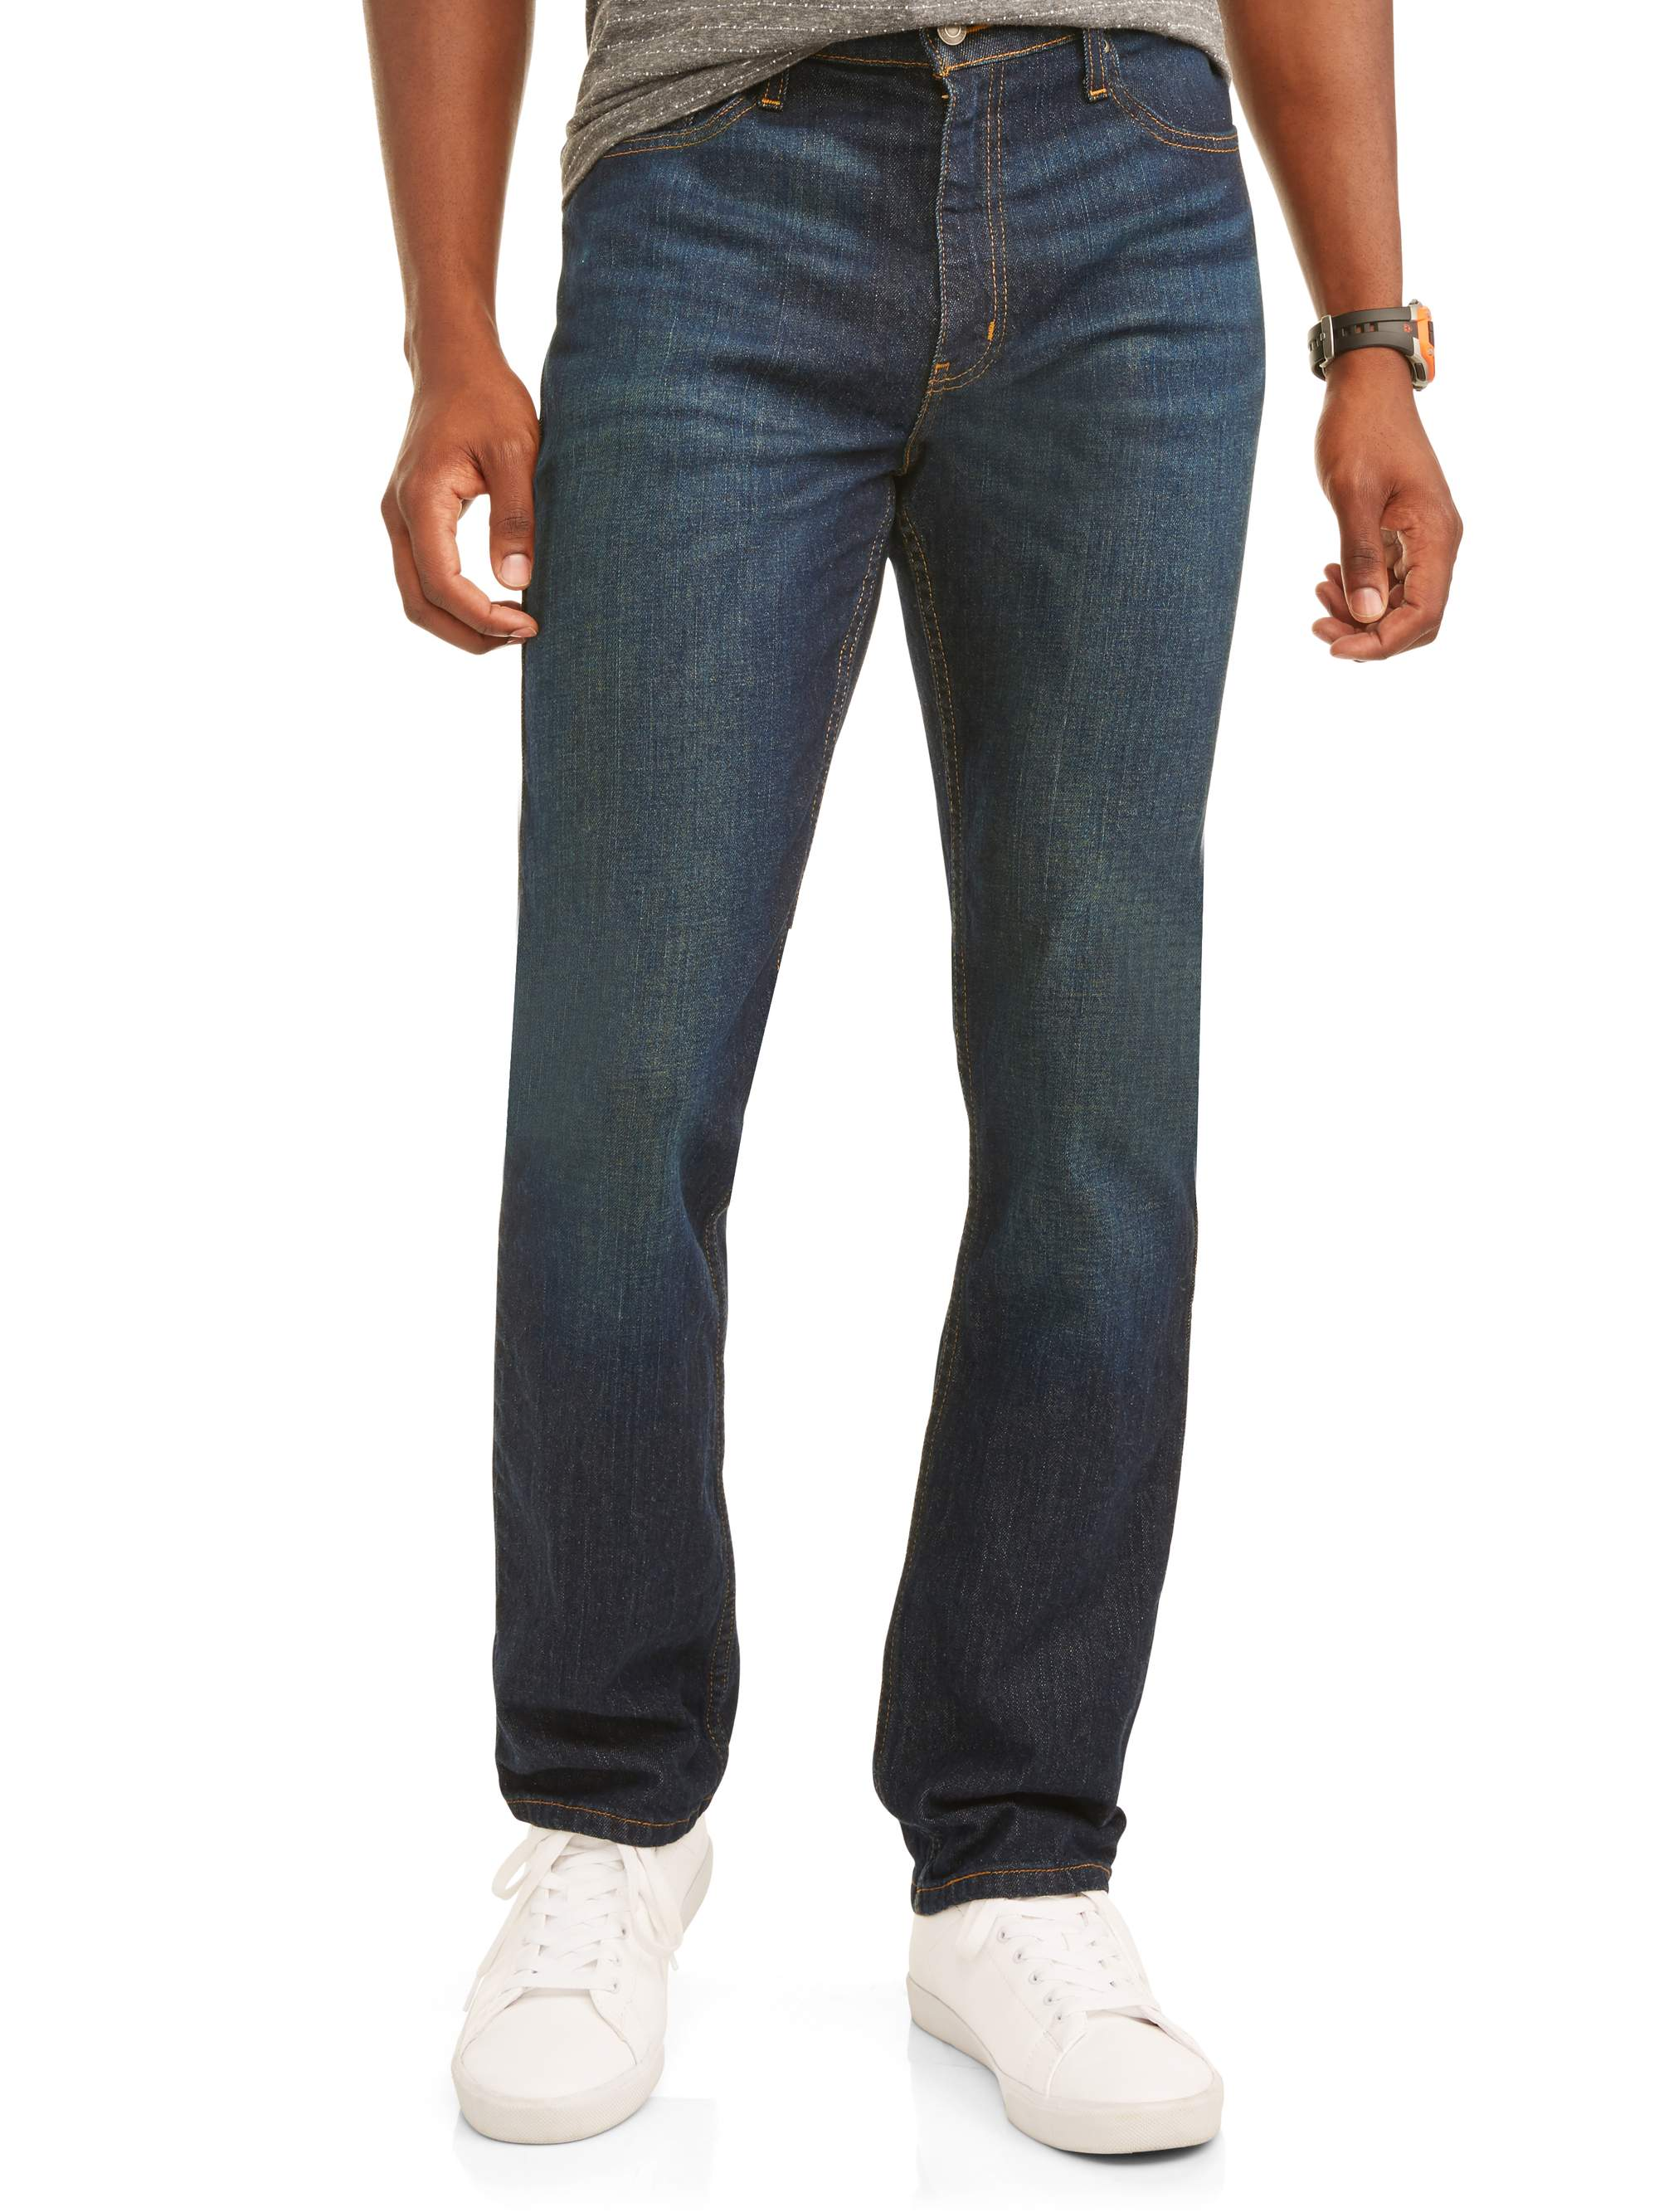 Men's Straight Fit Jean